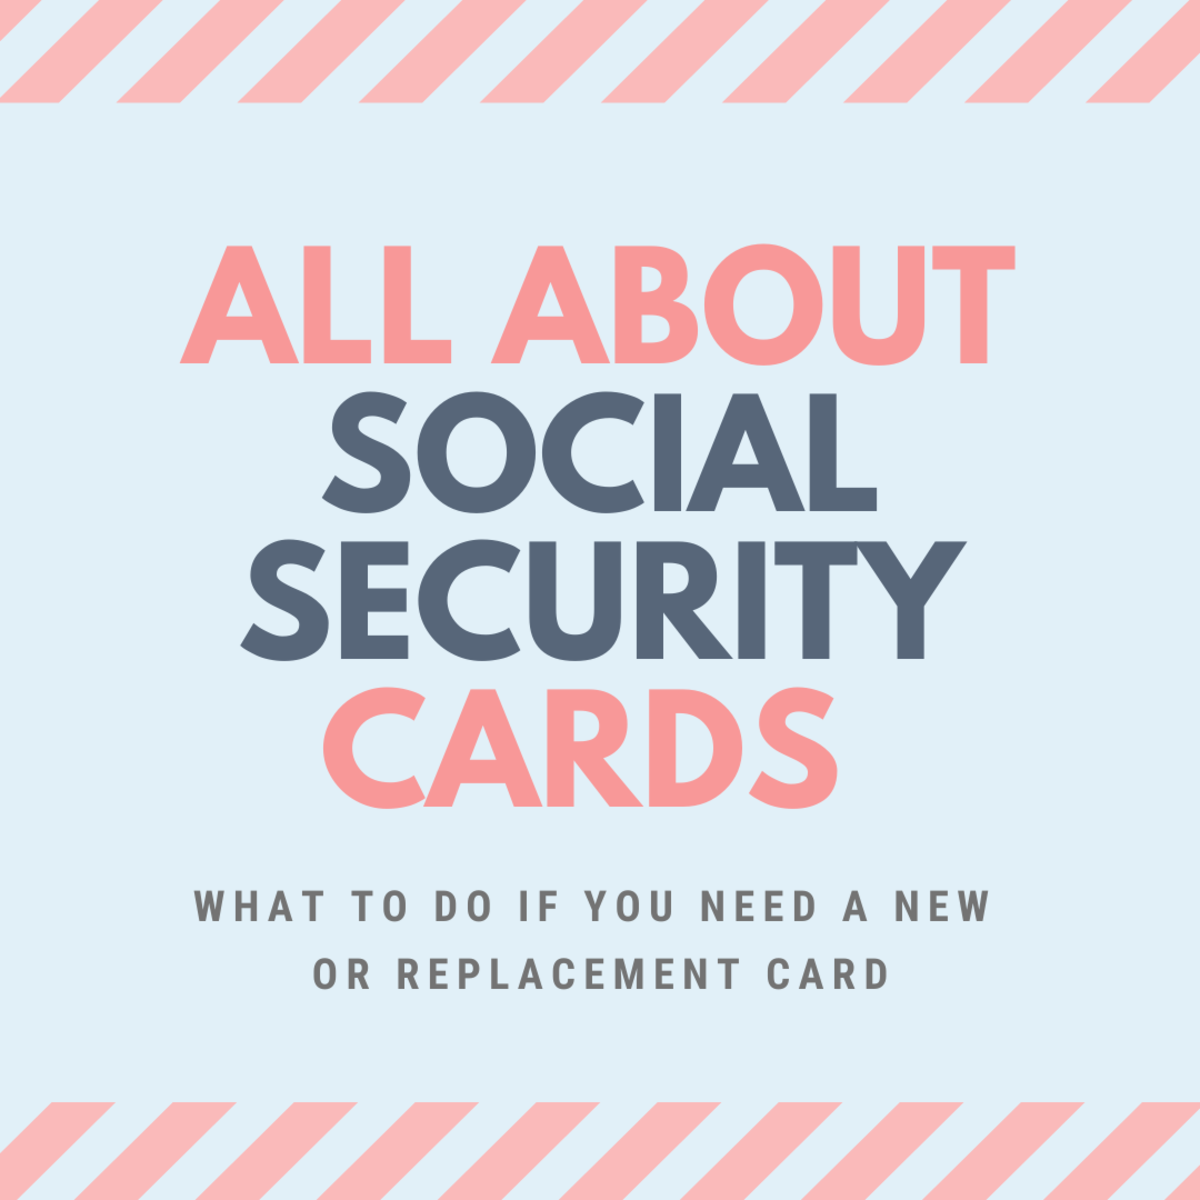 United States Social Security: How to Get a New or Replacement Card